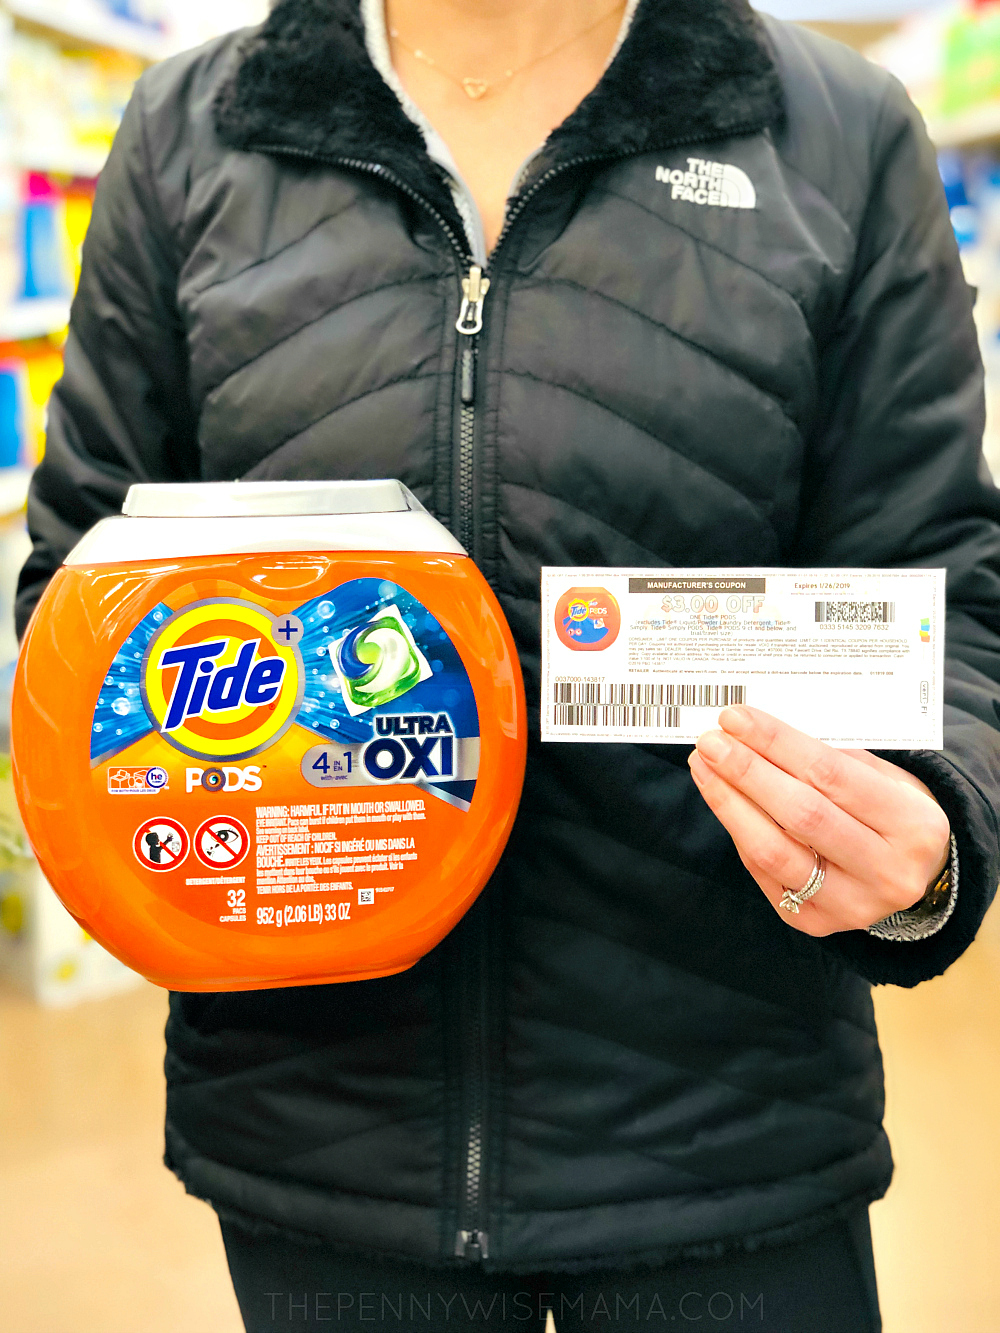 image about King Soopers Coupons Printable referred to as Help you save $3 upon Tide PODS Laundry Detergent Printable Coupon